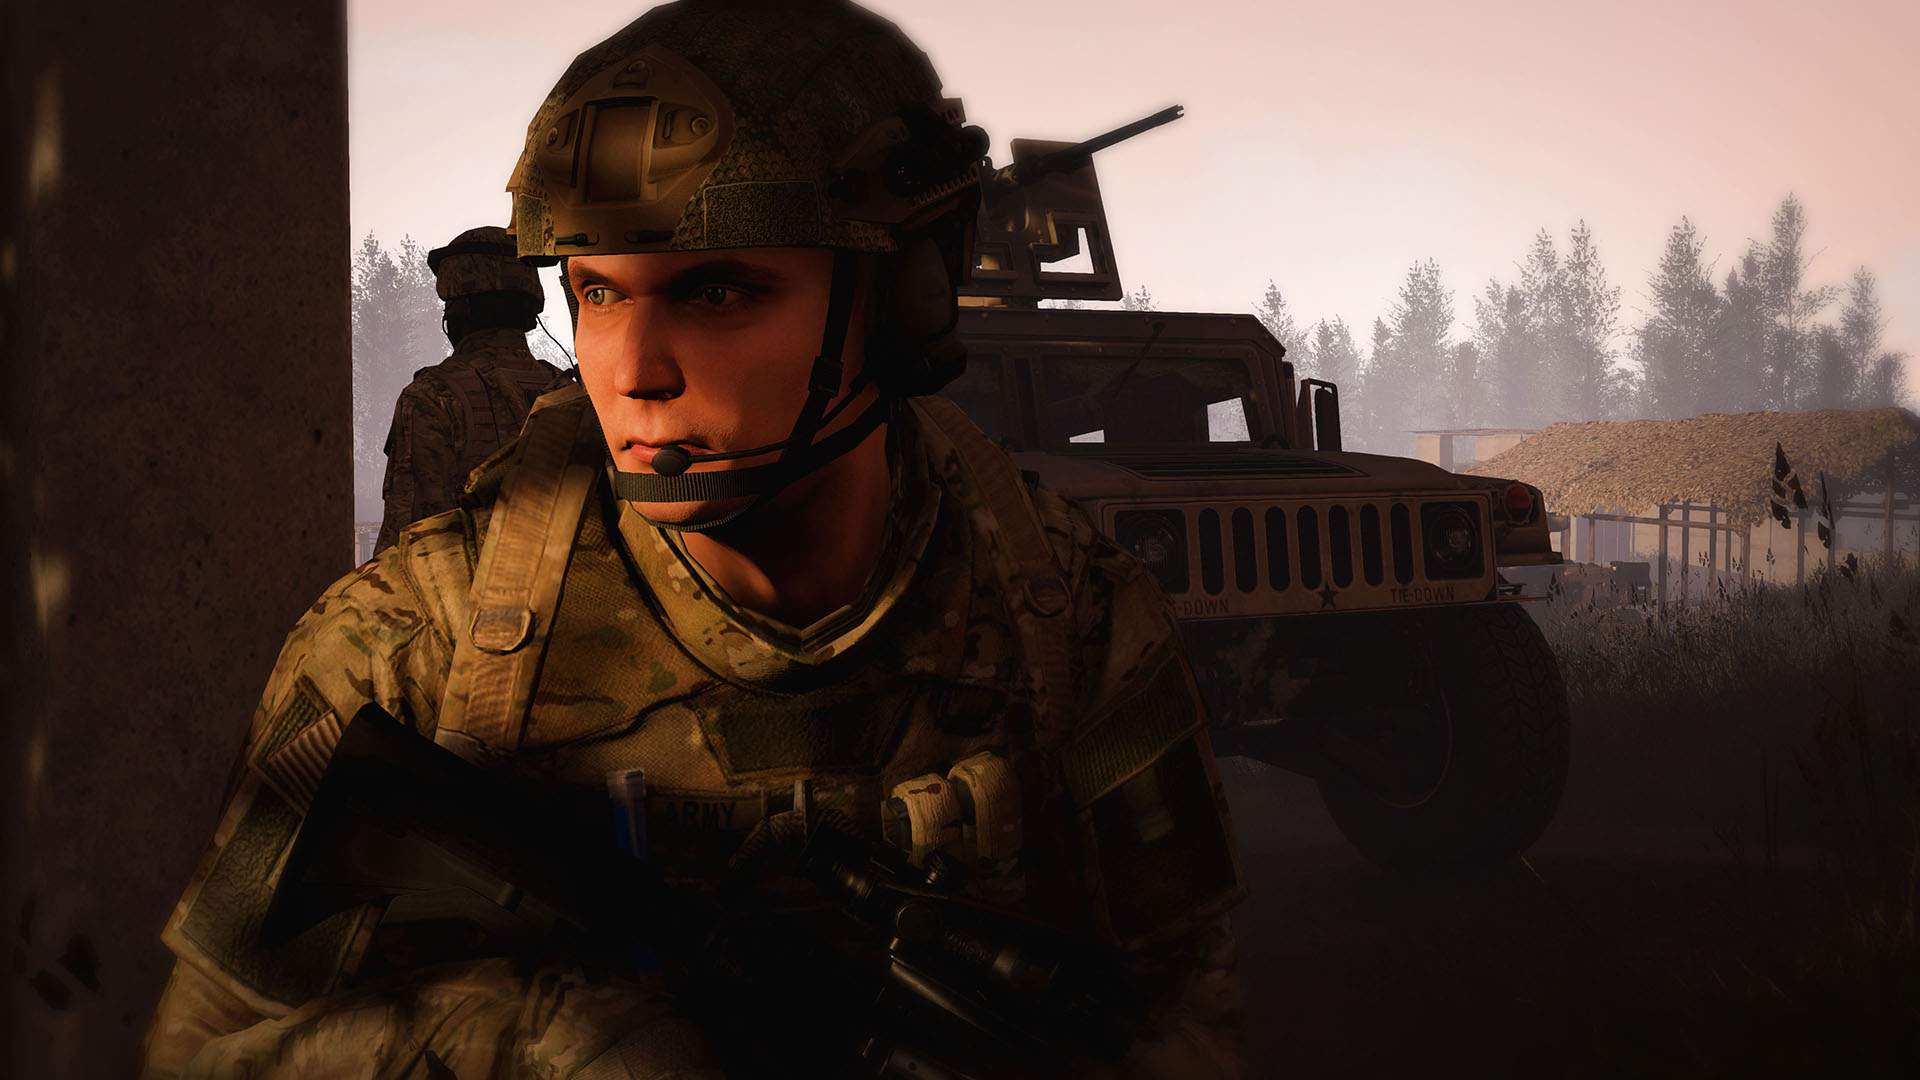 Squad is an exceptional military shooter so far